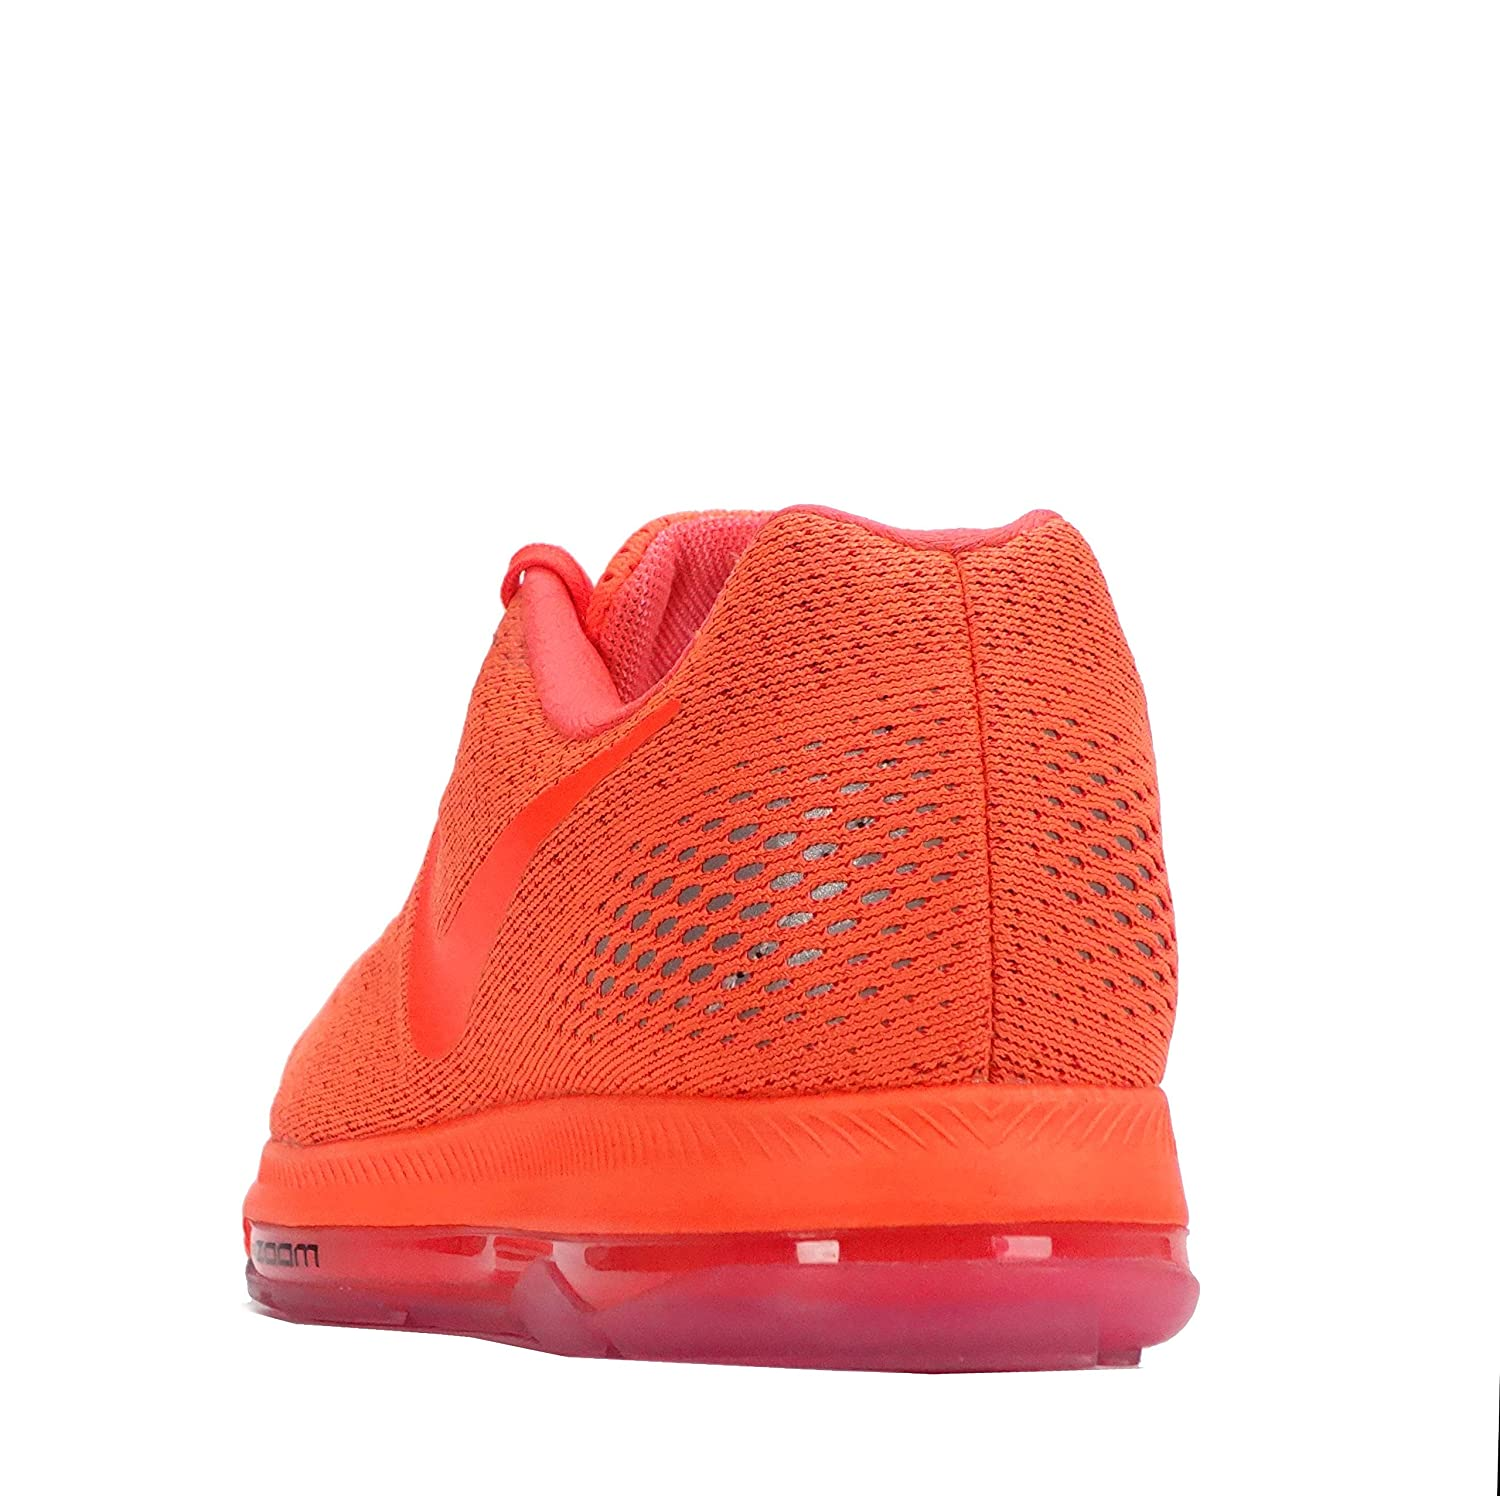 NIKE Zoom All Out Low Men's Running Sneaker B071NY5L8W 8.5 D(M) US|Orange